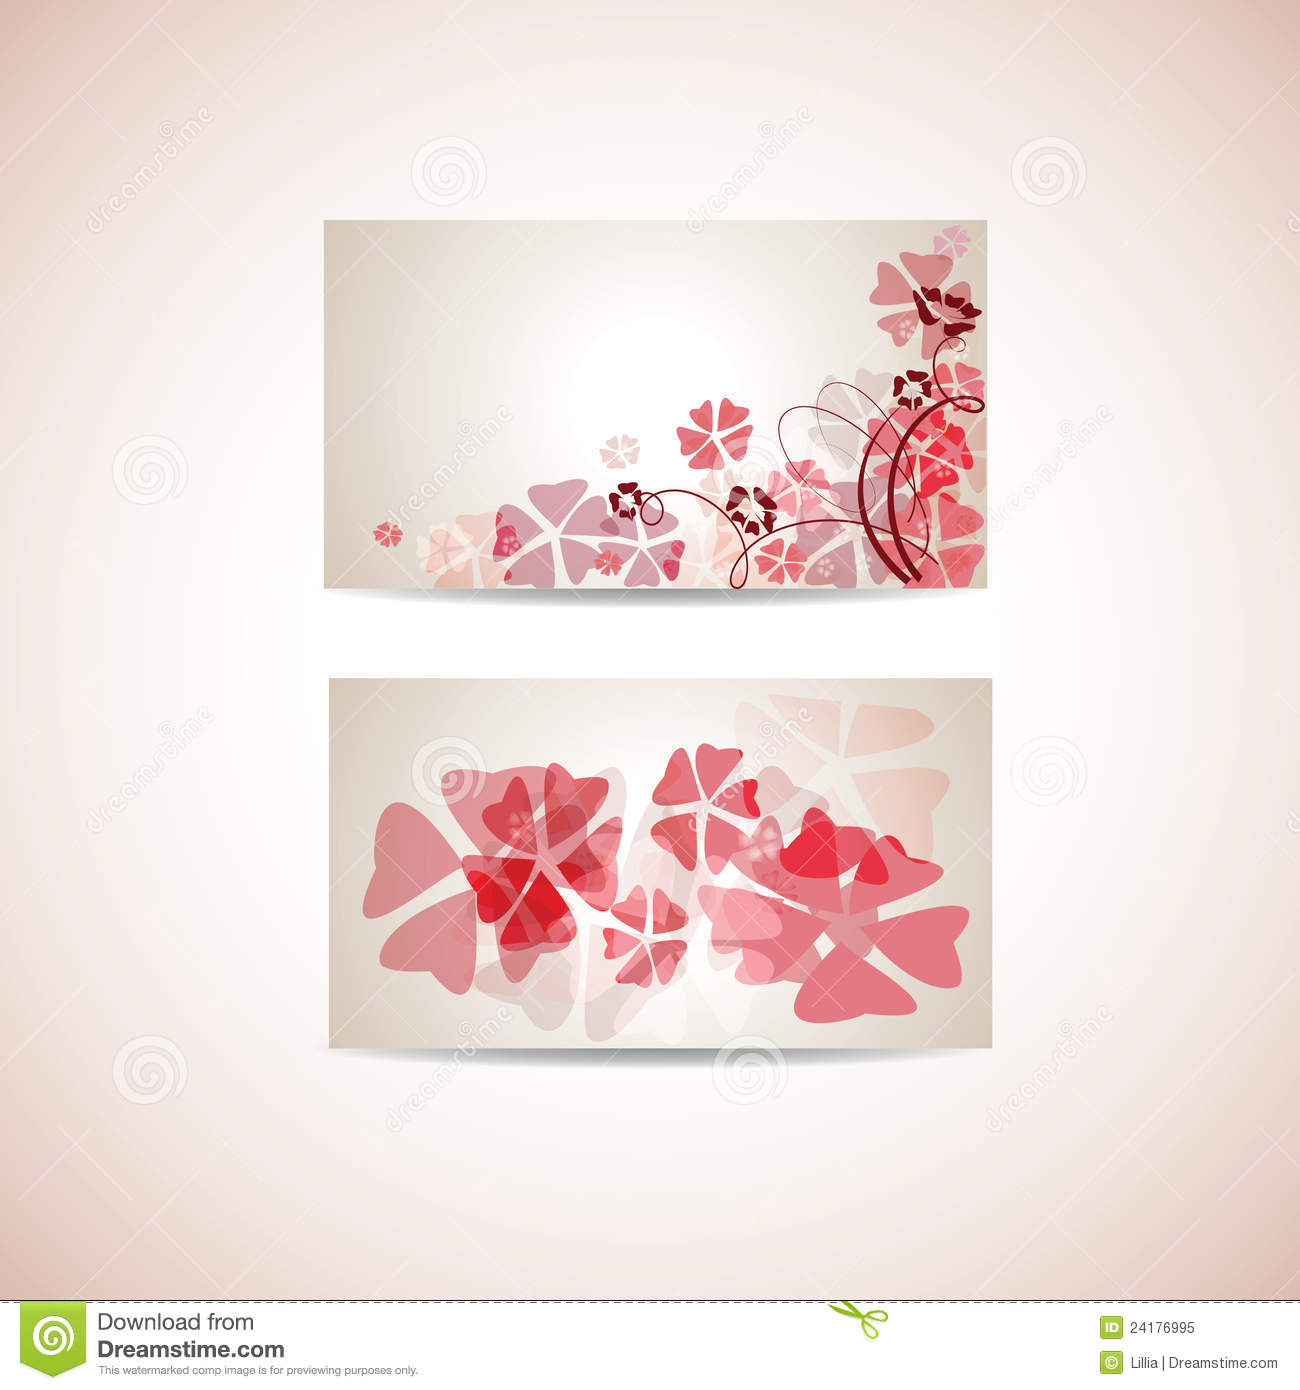 Floral business card template stock vector illustration of floral business card template flashek